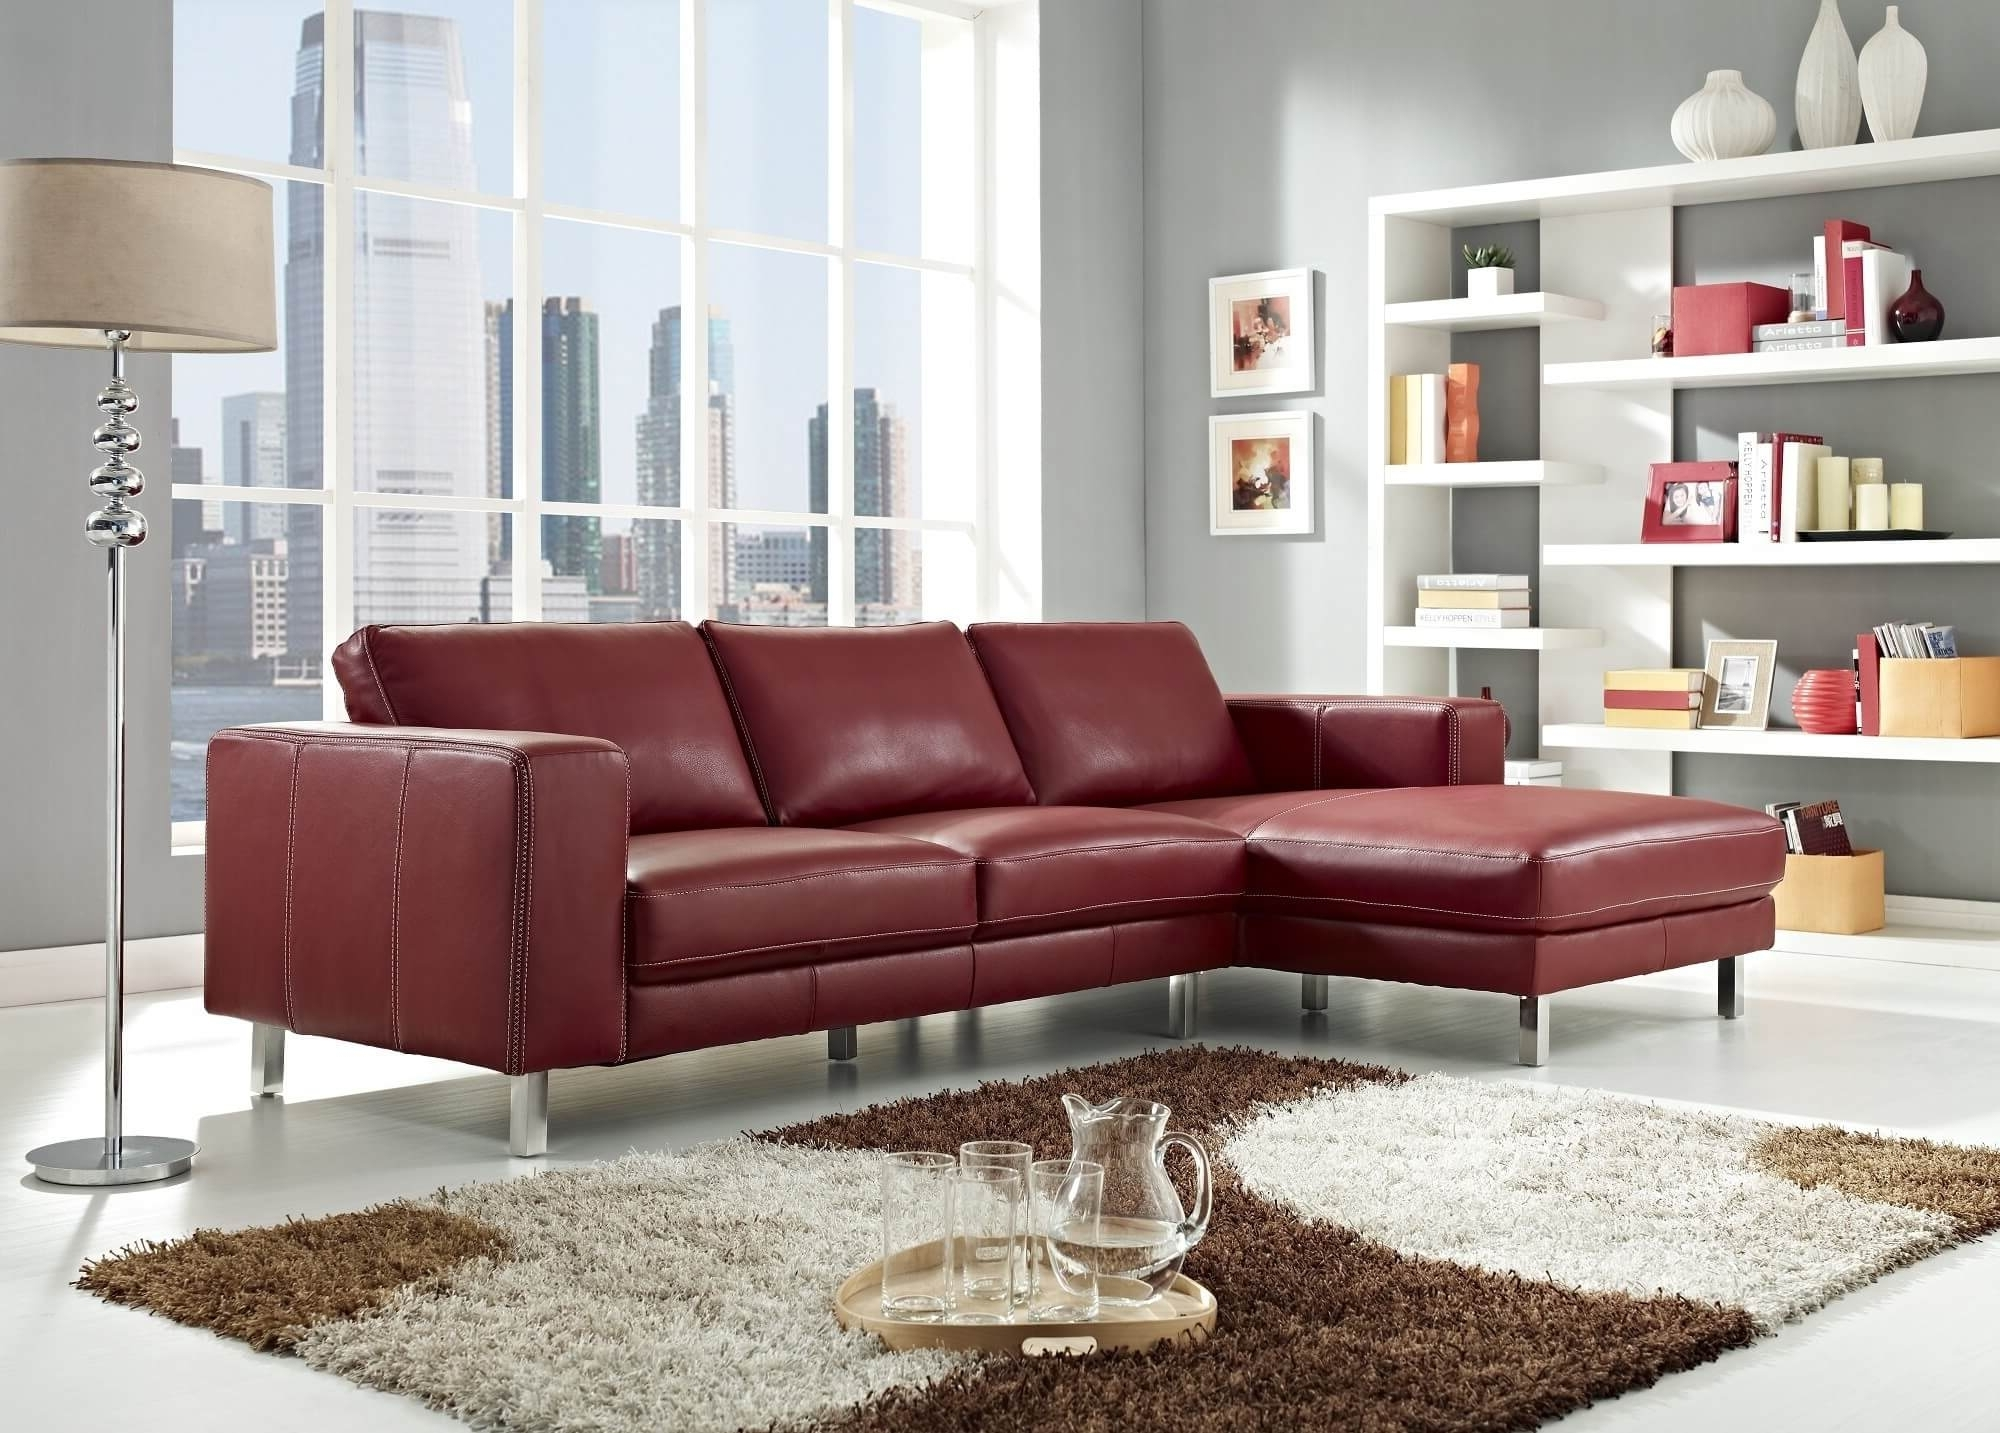 100X80 Sectional Sofas Regarding 2017 75 Modern Sectional Sofas For Small Spaces (2018) (Gallery 14 of 15)